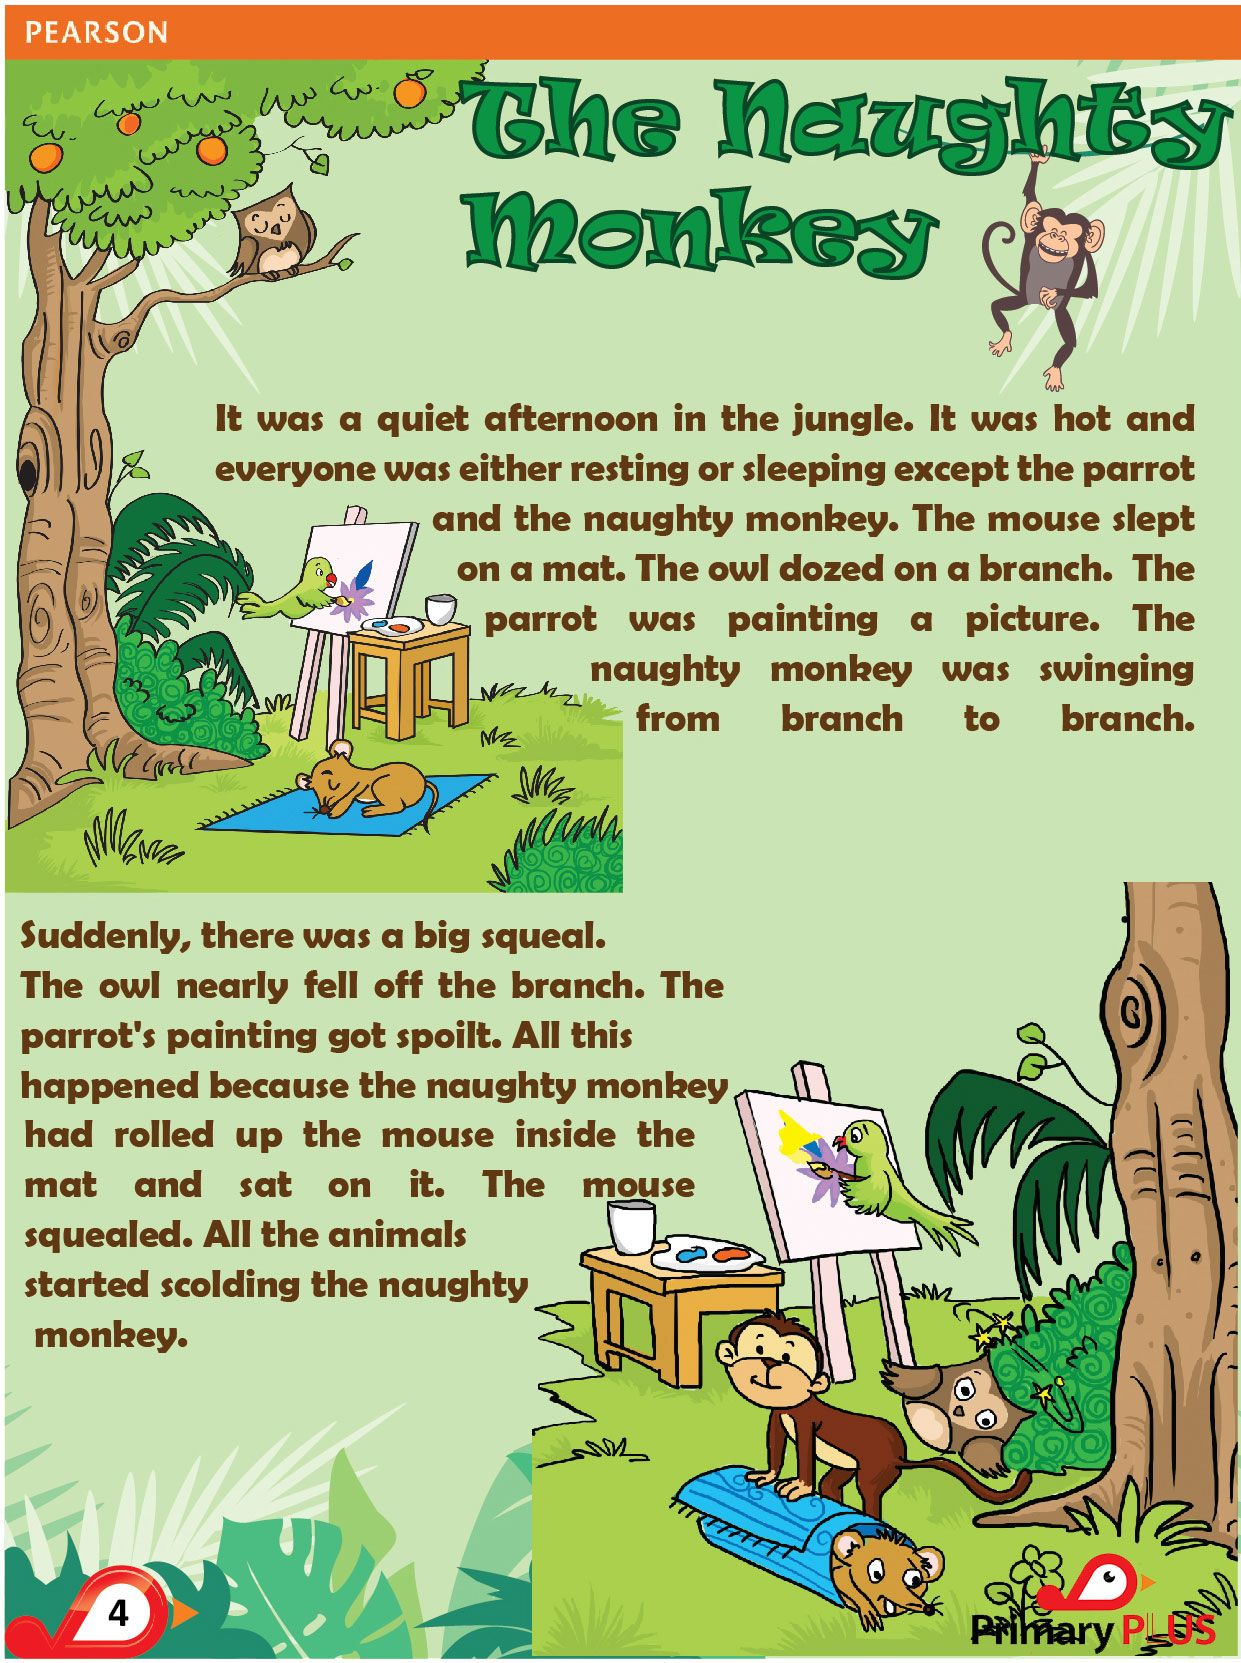 More Kids Stories From Primary Plus Media Moral